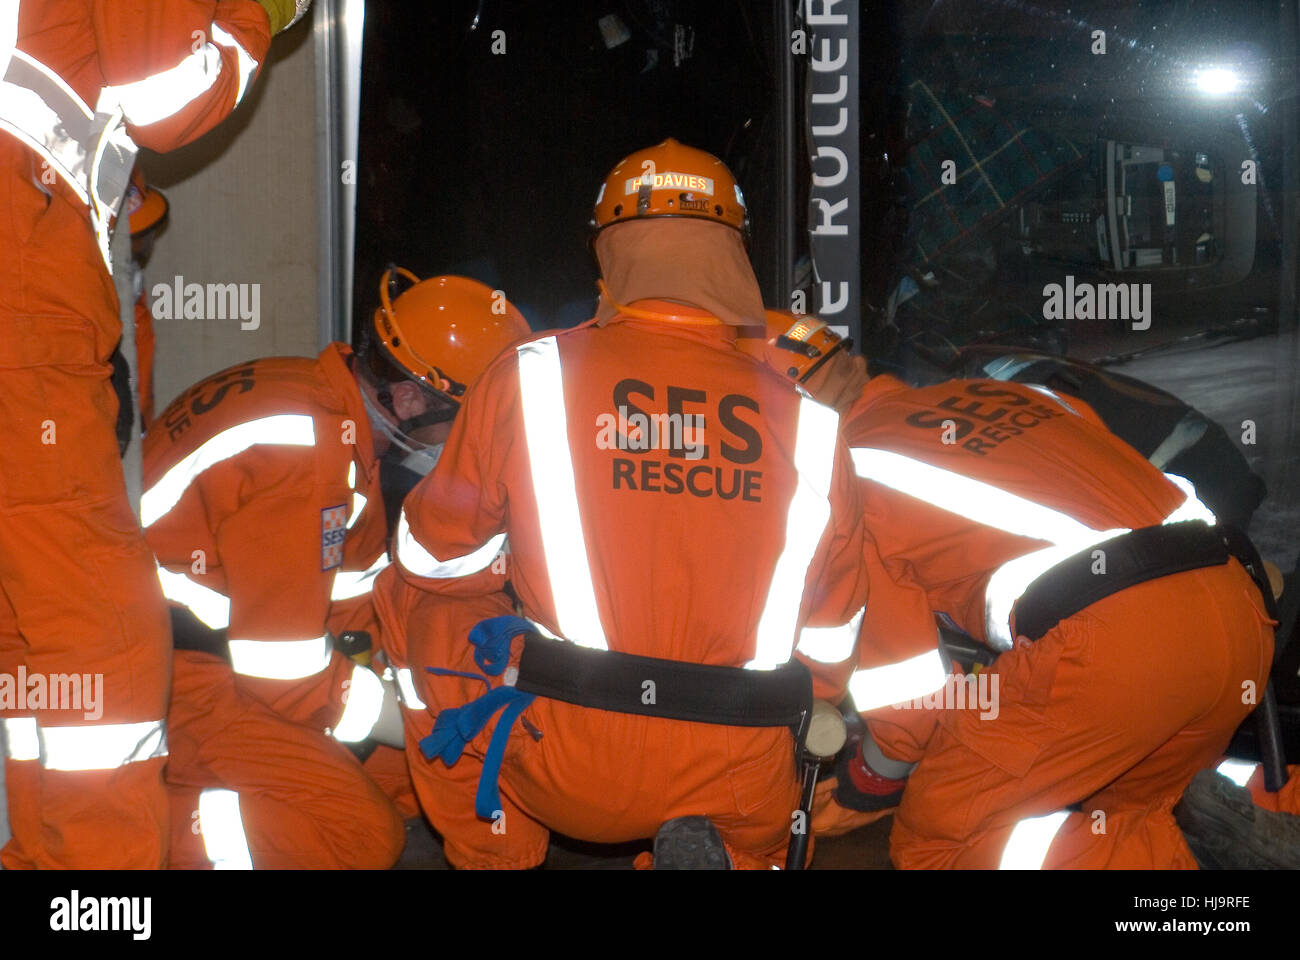 SES EMERGENCY RESCUE SERVICES AT THE SCENE OF A MOCK ROAD ACCIDENT IN SOUTH AUSTRALIA - Stock Image